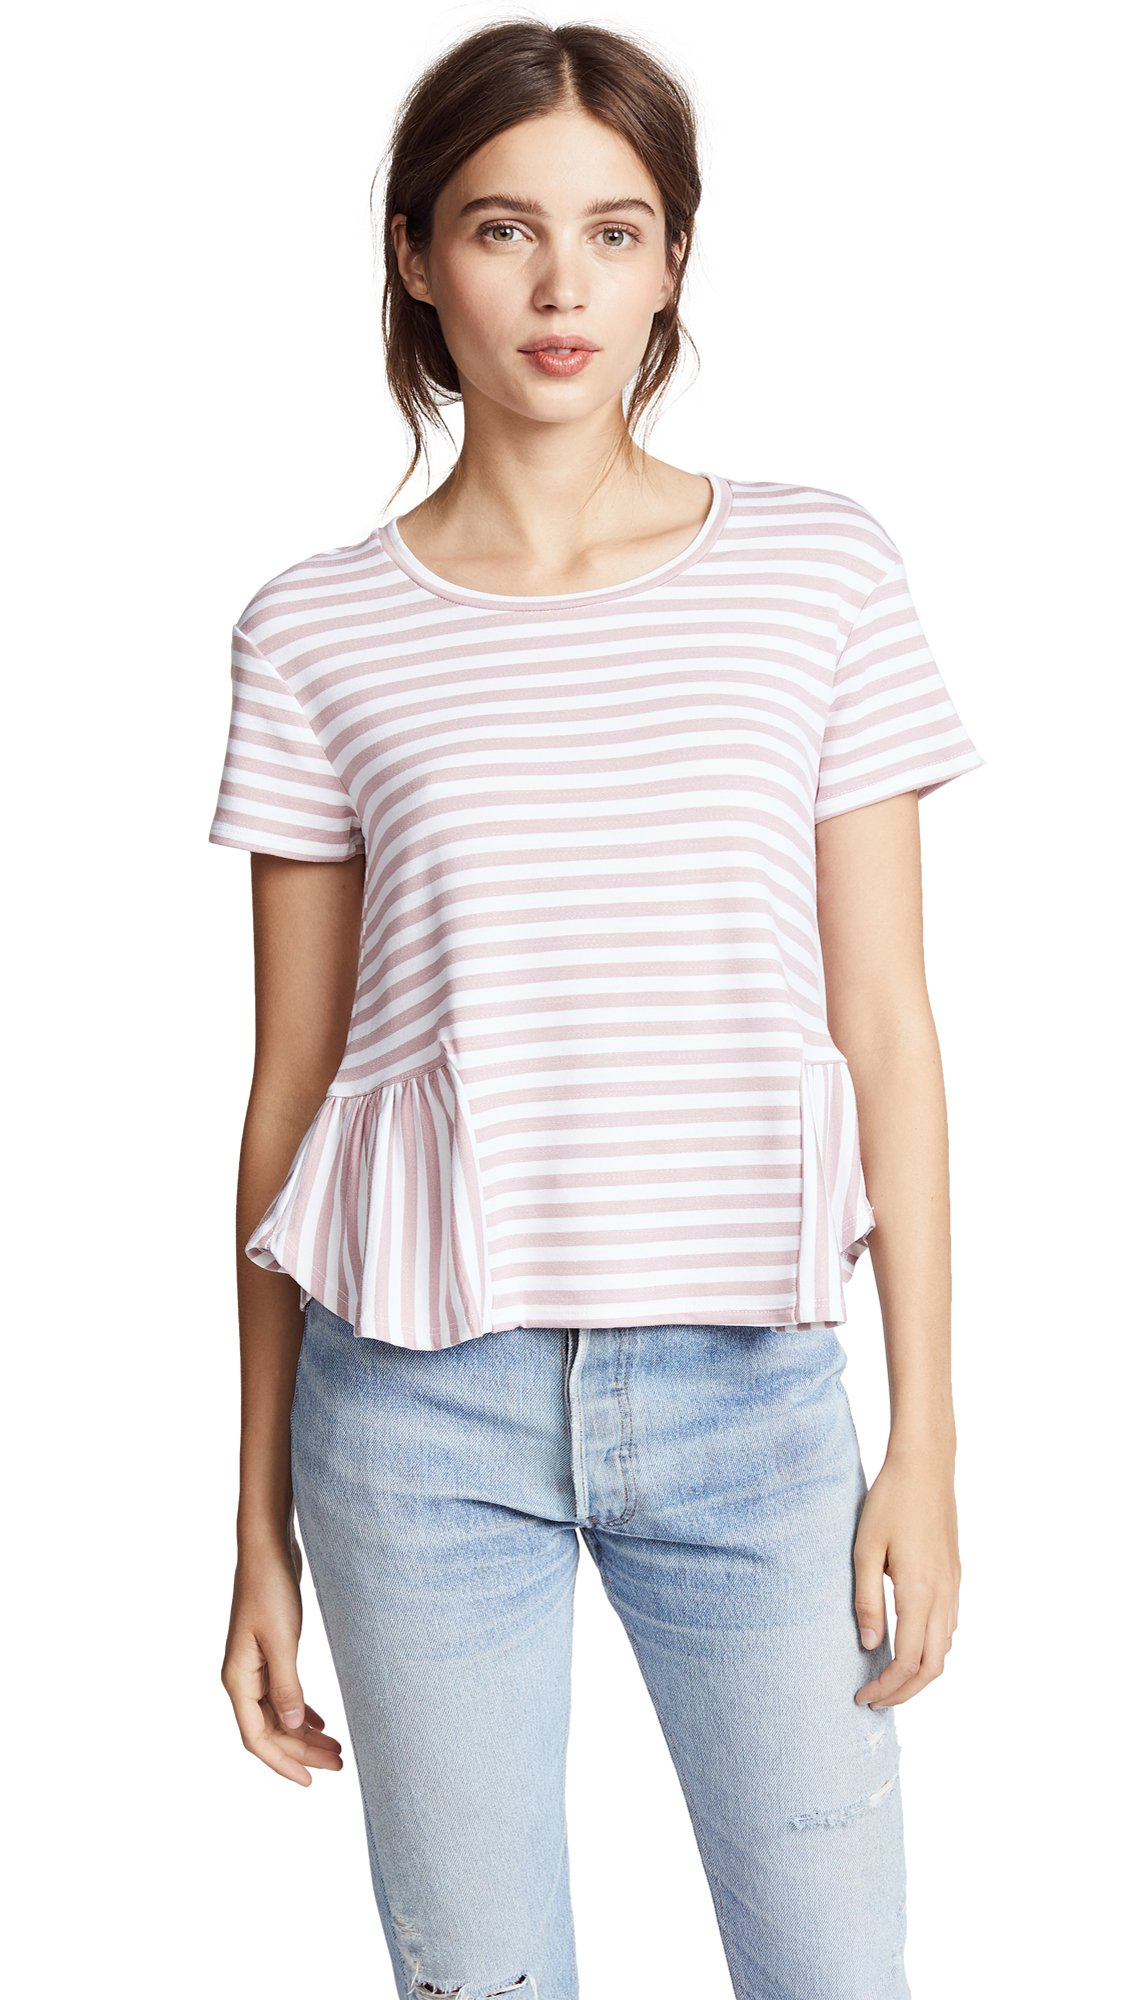 Three Dots Women's Cape Cod Stripe Loose Short Top, Rose/White, Extra Small